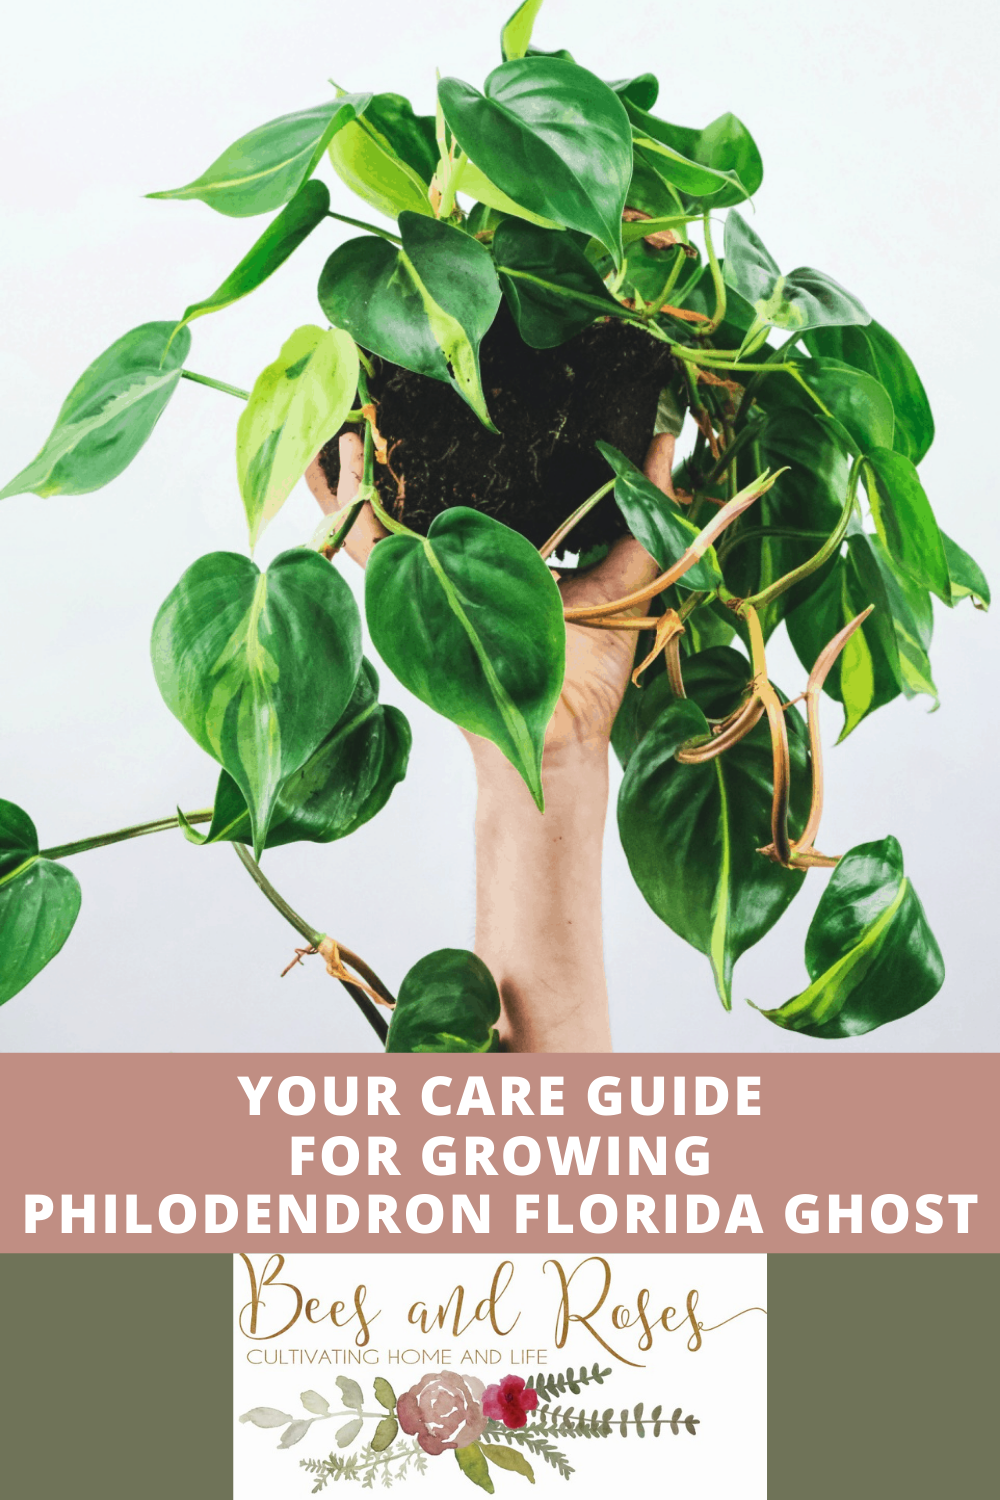 Beesandroses.com is your new guide to all things garden related! Find all all you need to know about growing healthy, thriving plants! Find out how to care for philodendron Florida ghost today!